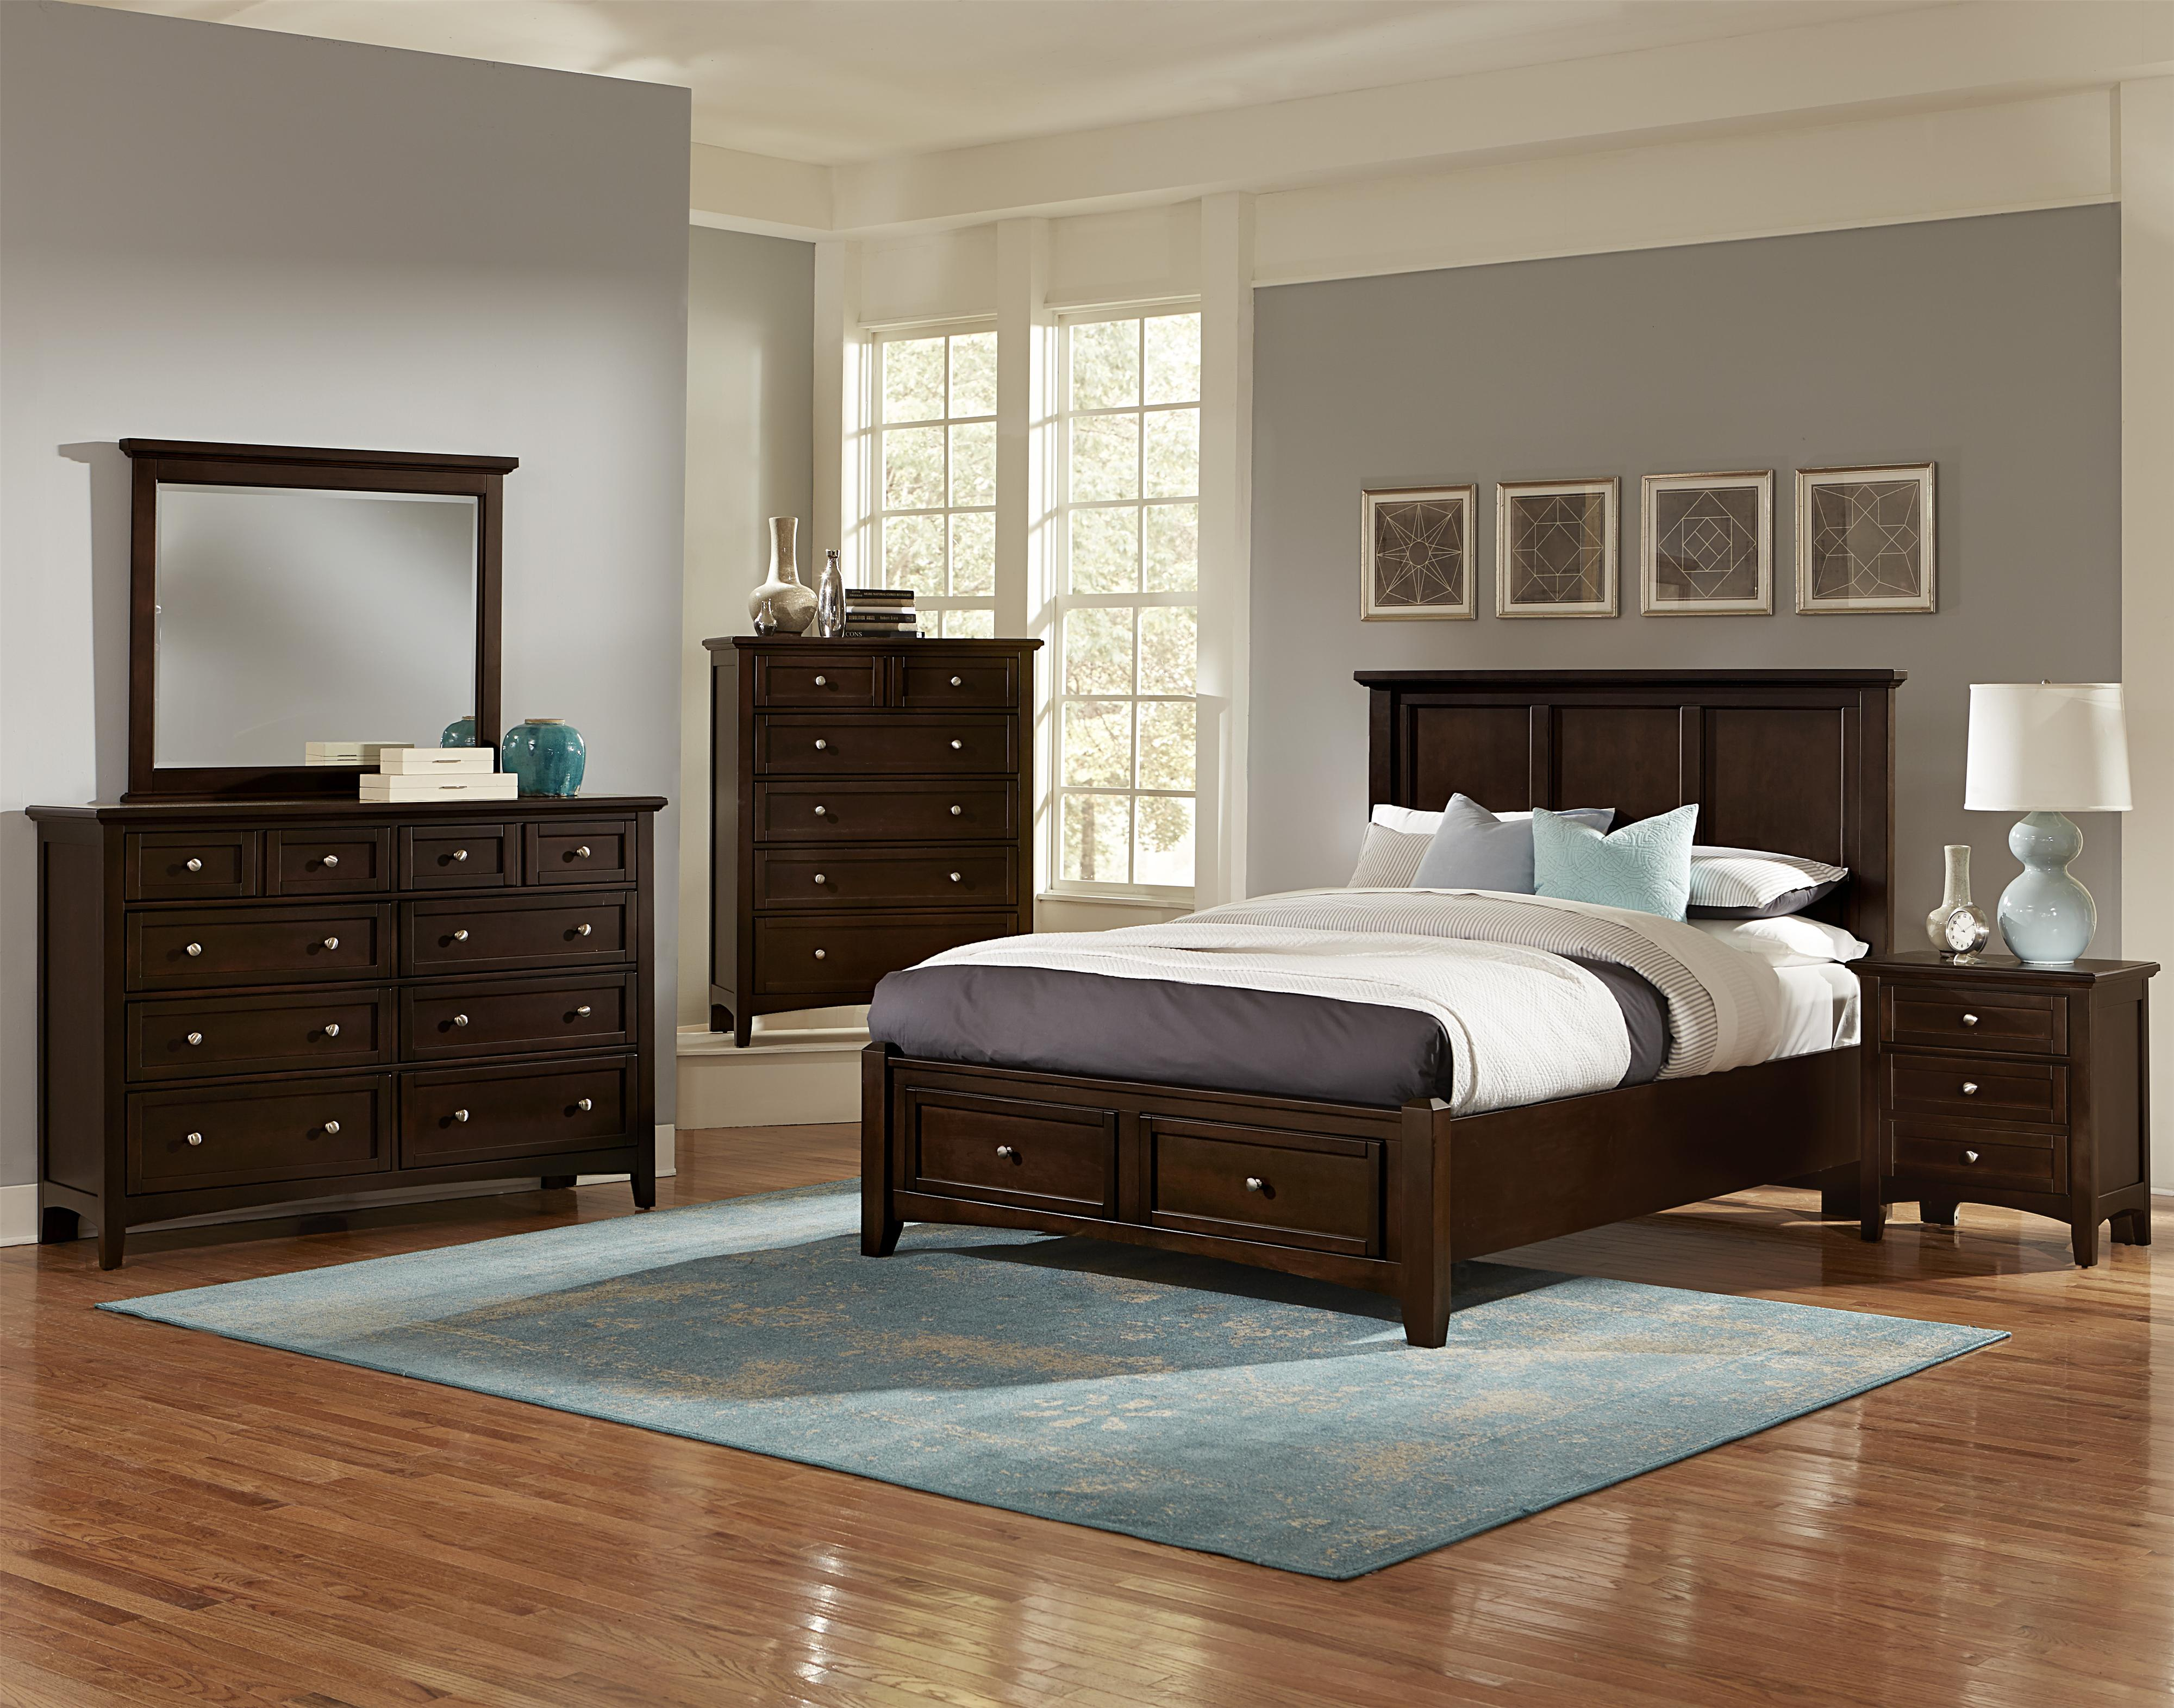 Bunkhouse King Bedroom Group by Vaughan-Bassett at Crowley Furniture & Mattress